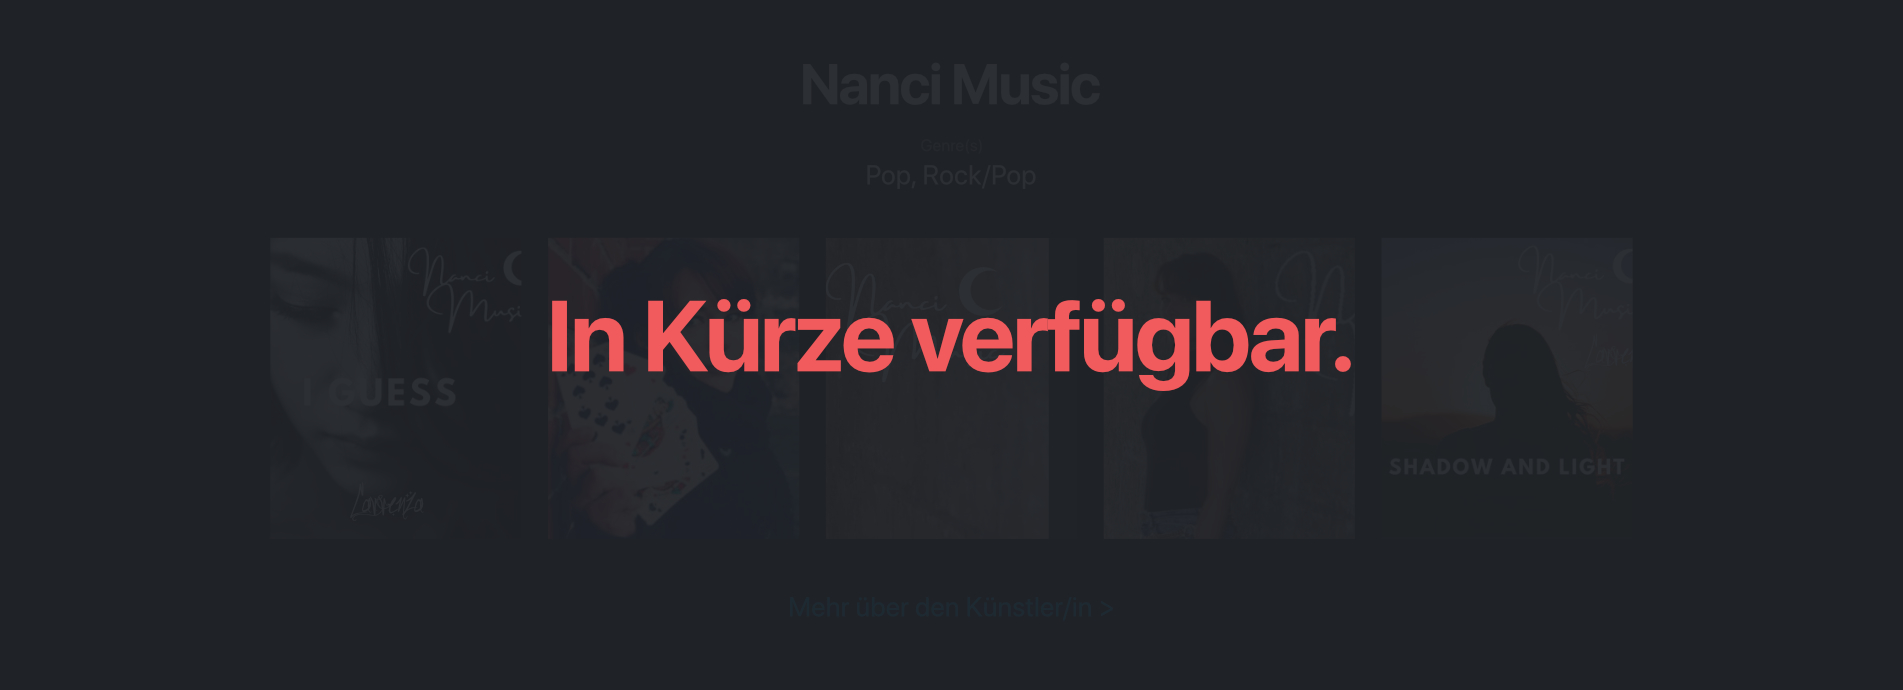 Nanci Music